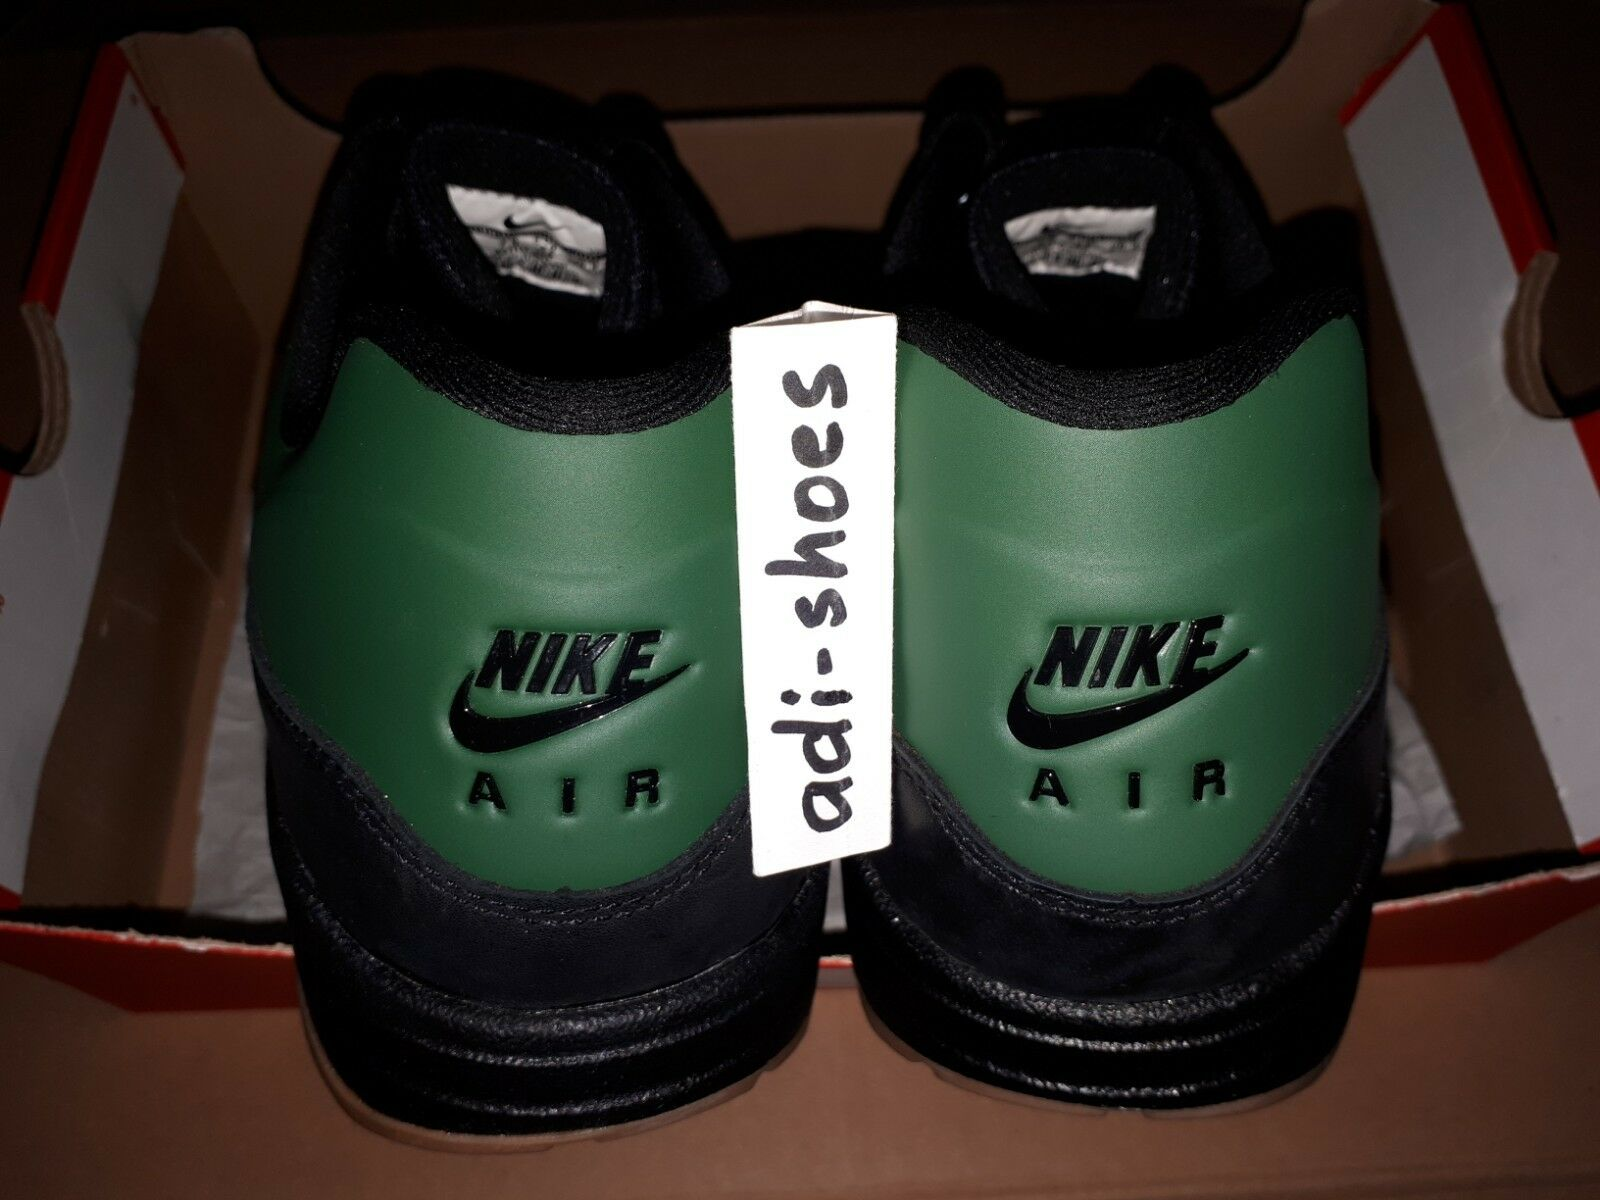 NIKE AIR MAX 1 VT QS GORGE GORGE GORGE GREEN US 7,5 8 10 premium 831113-300 patch ice 90 dlx f94d34